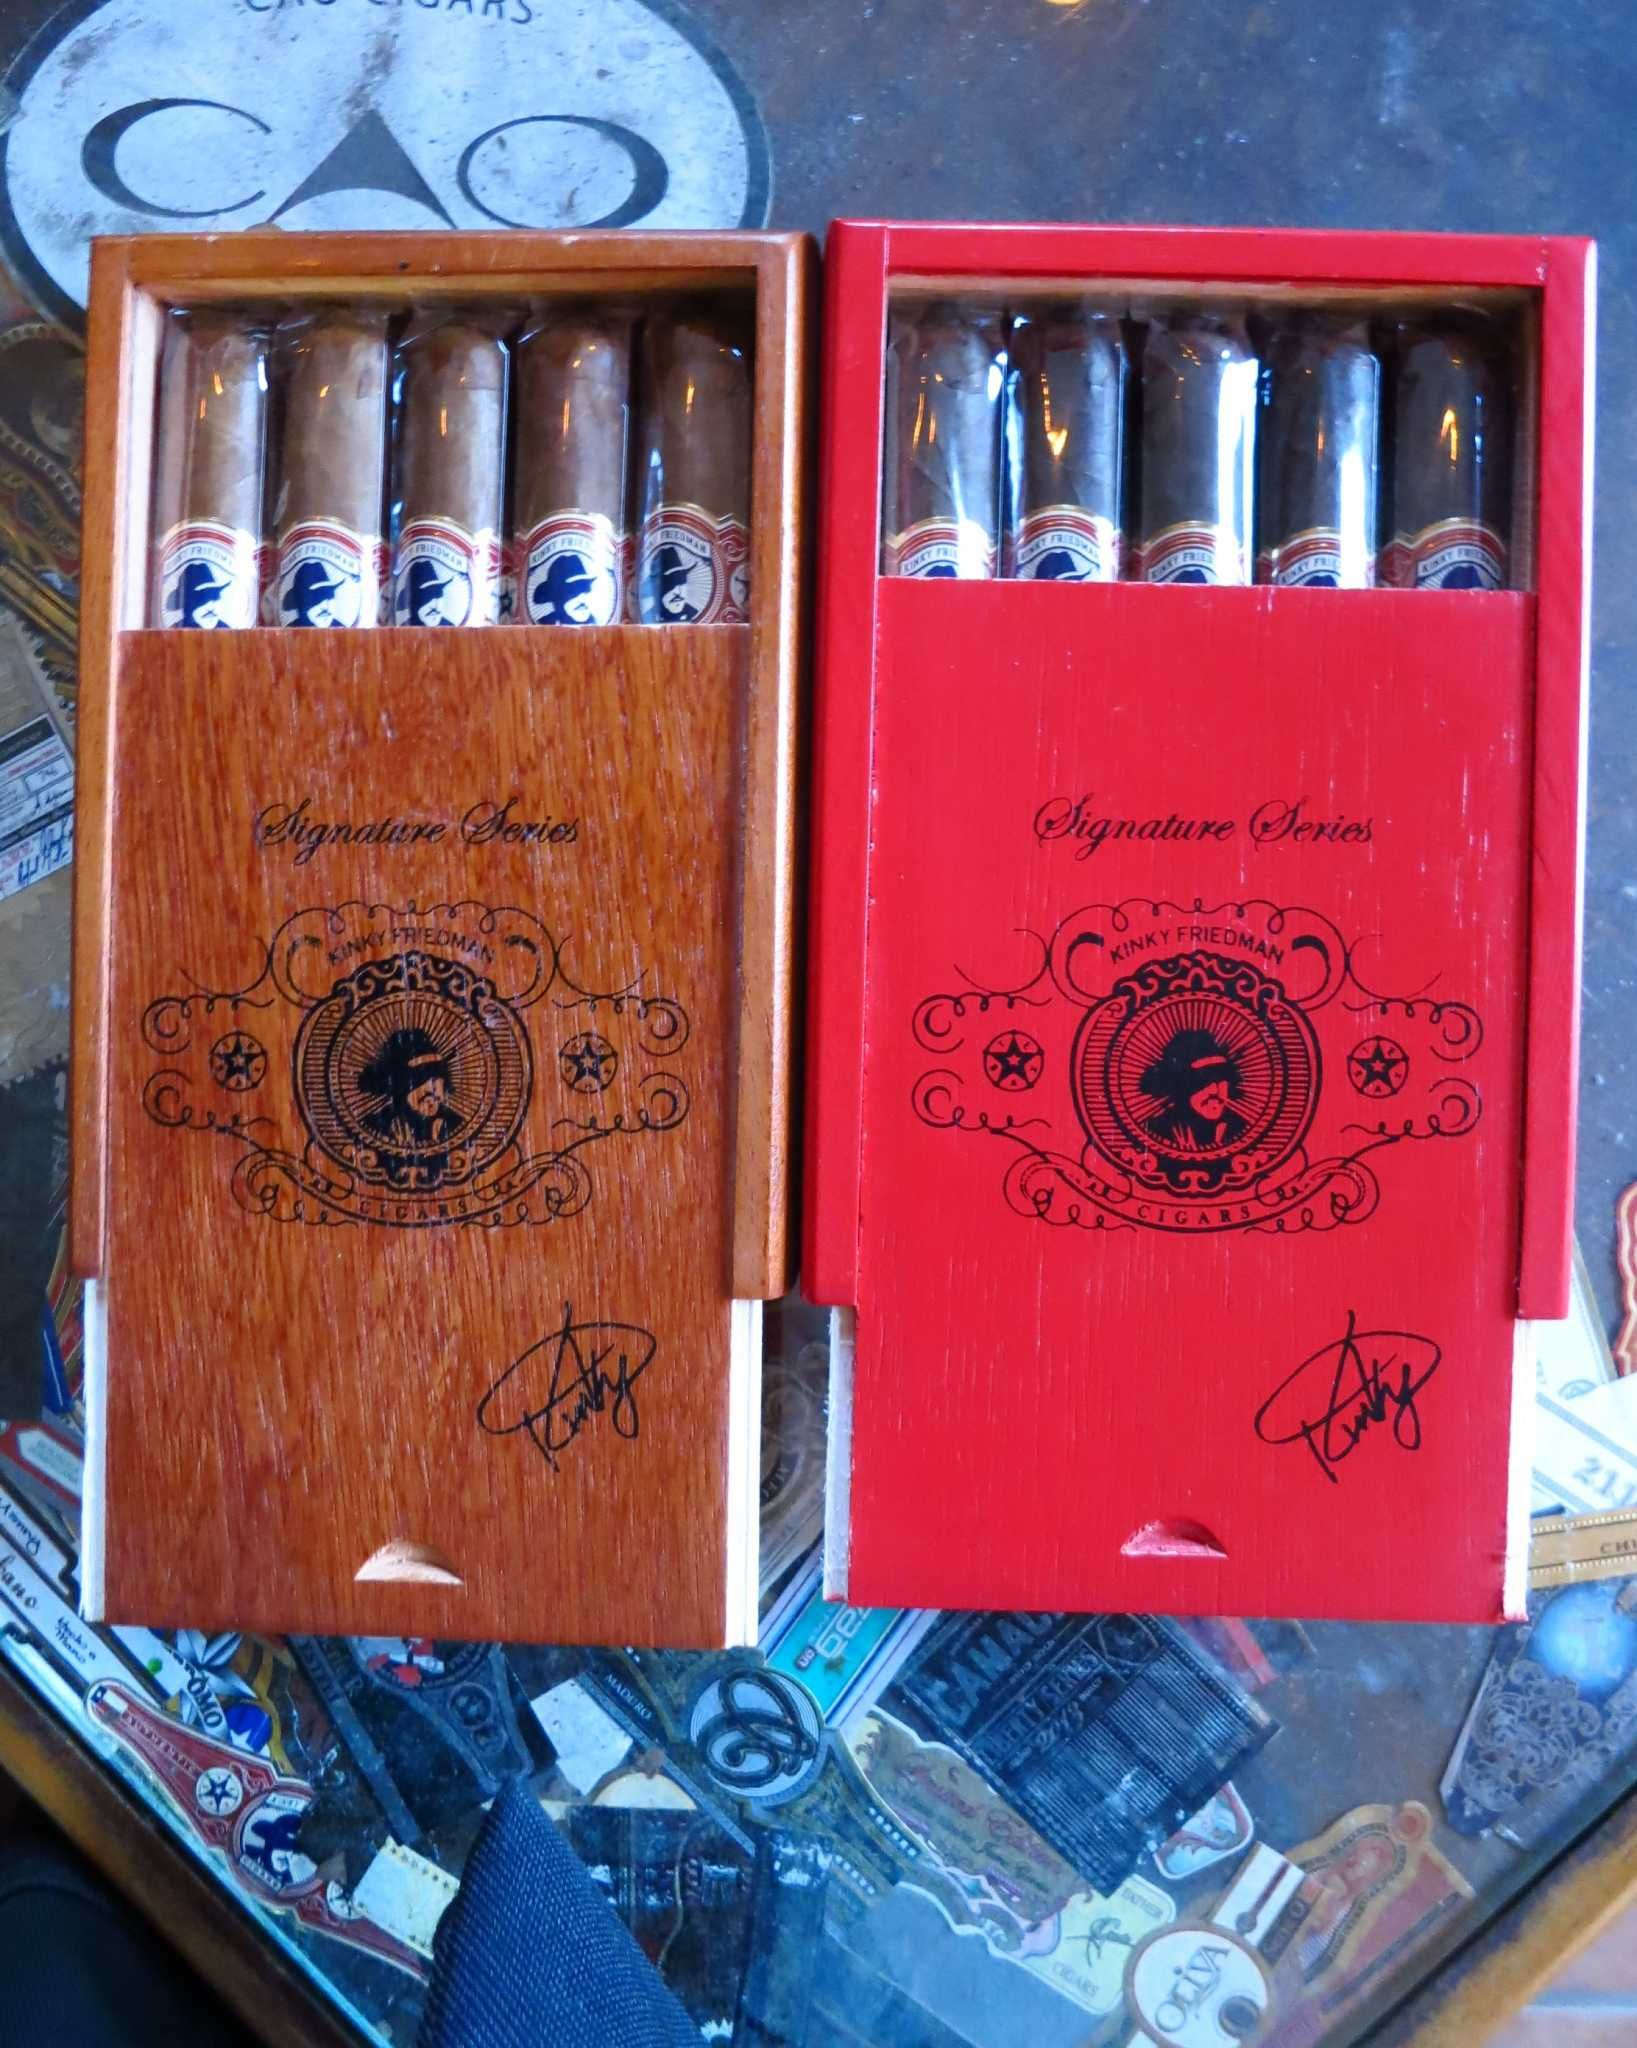 Galveston - where the gifts are. Cigar aficionados or those shopping for them will want to visit the Havana Alley Cigar Shop & Lounge on 21st Street. Specializing in boutique cigars, with hundreds of different blends and sizes, Havana Alley is also the sole authorized dealer of Kinky Friedman cigars, sold individually and in boxes of five or 20. Photo by Kathleen Scott for the Express-News.